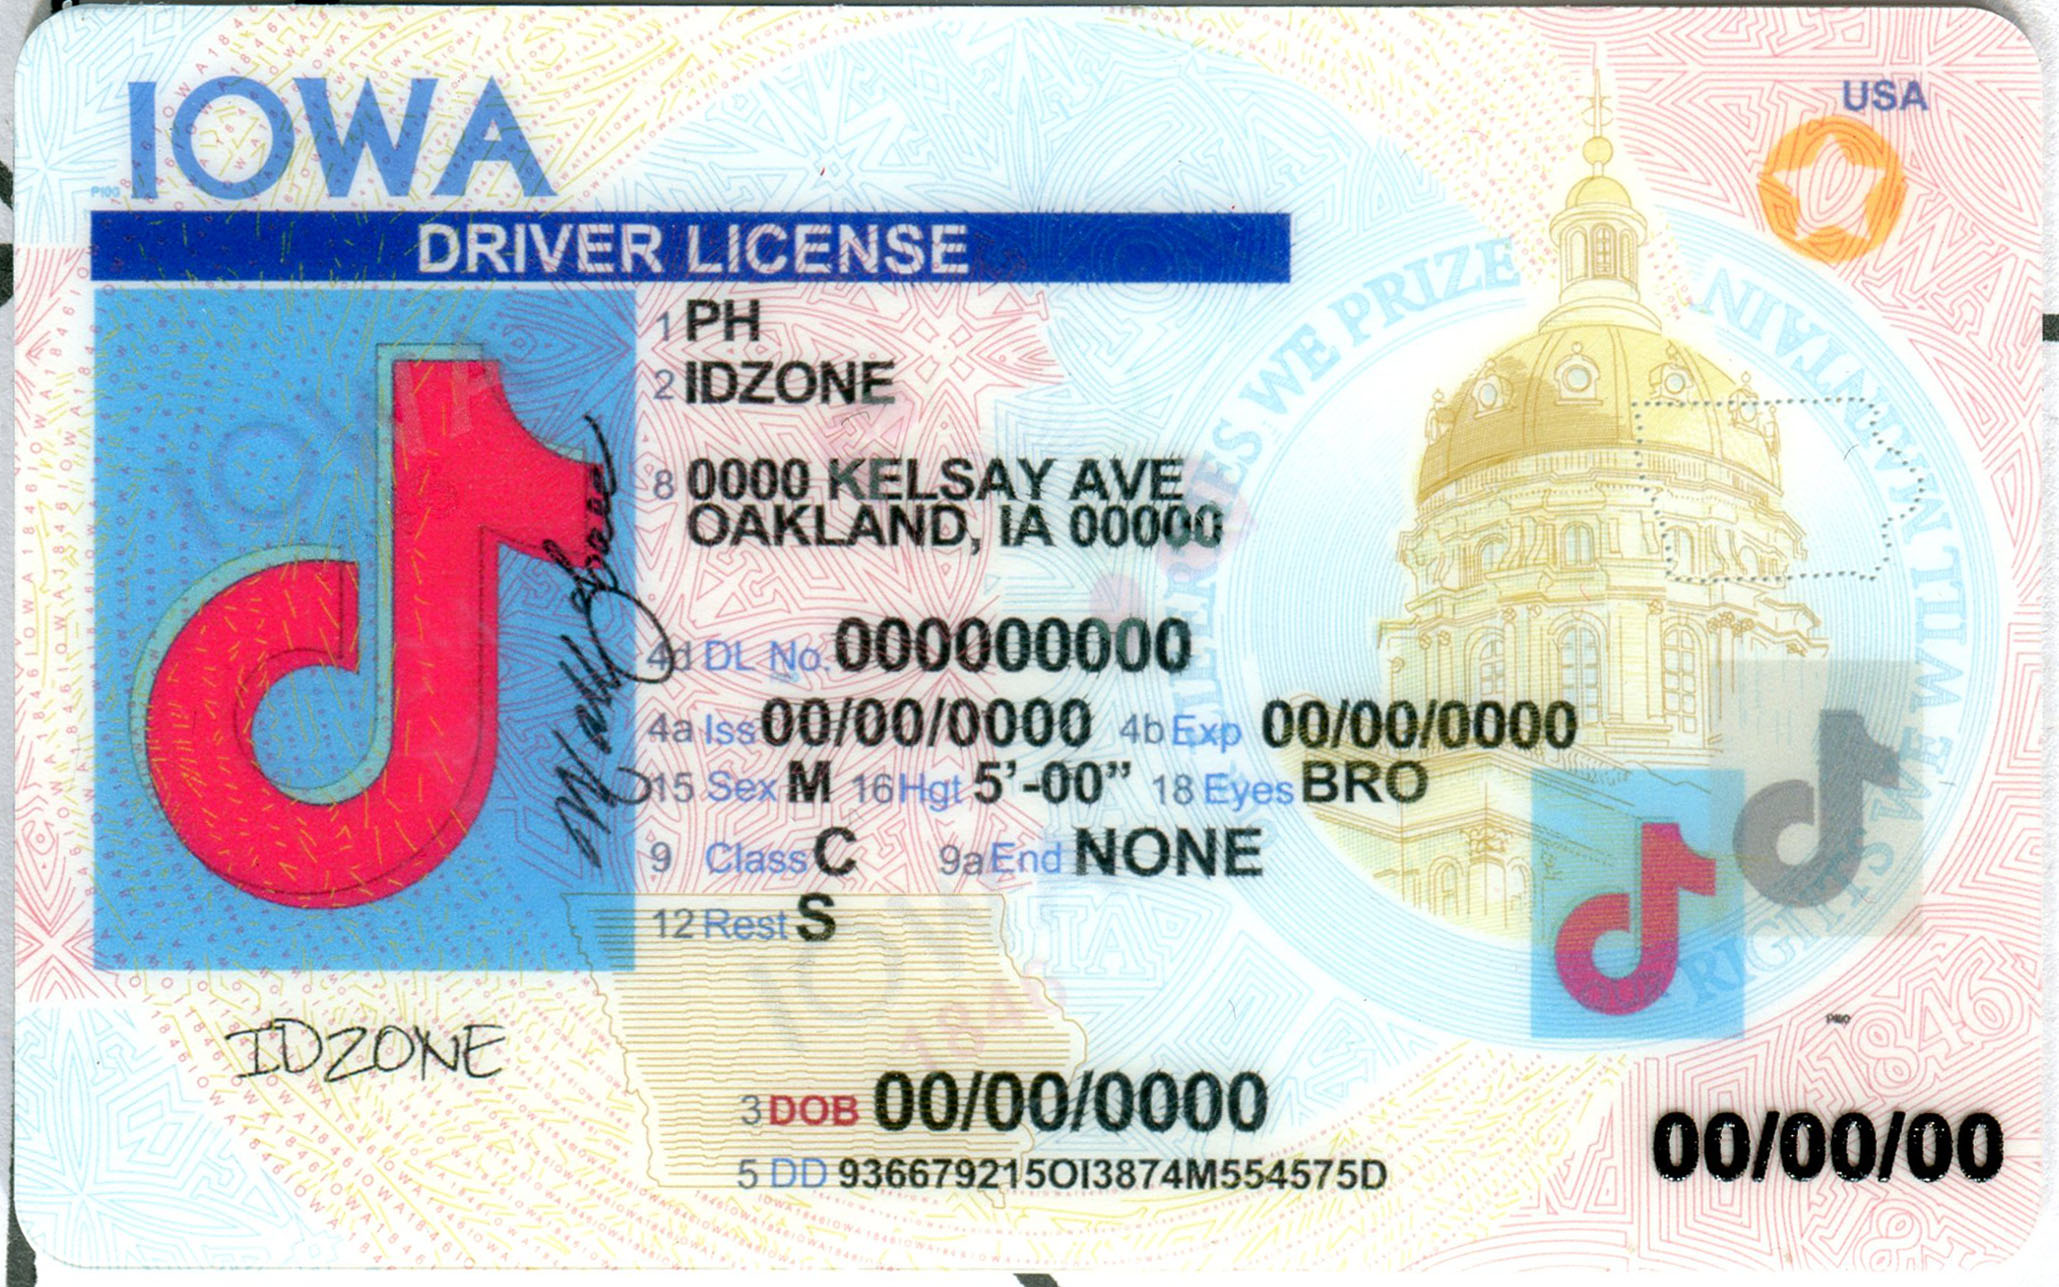 IOWA-New fake id